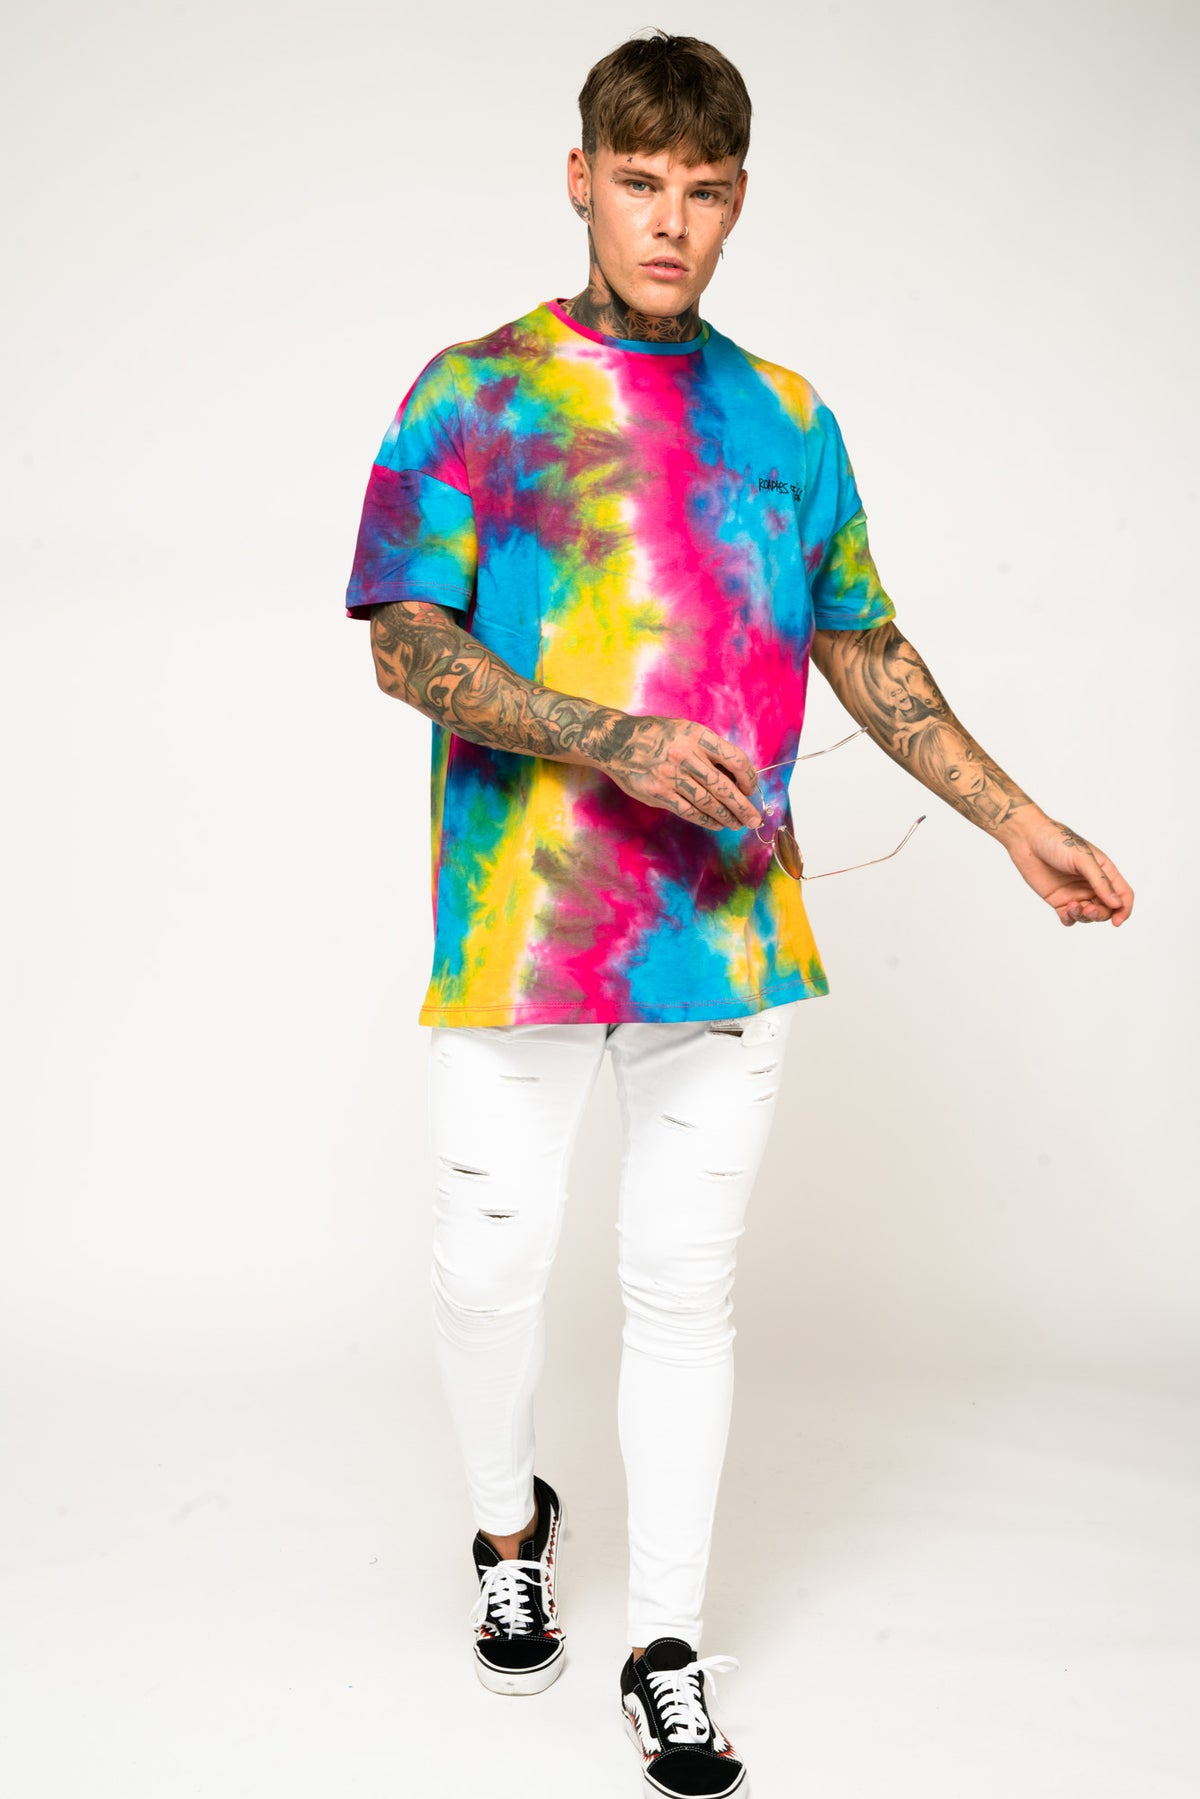 Roadies of 66 - Oversized Tie Dye T-Shirt